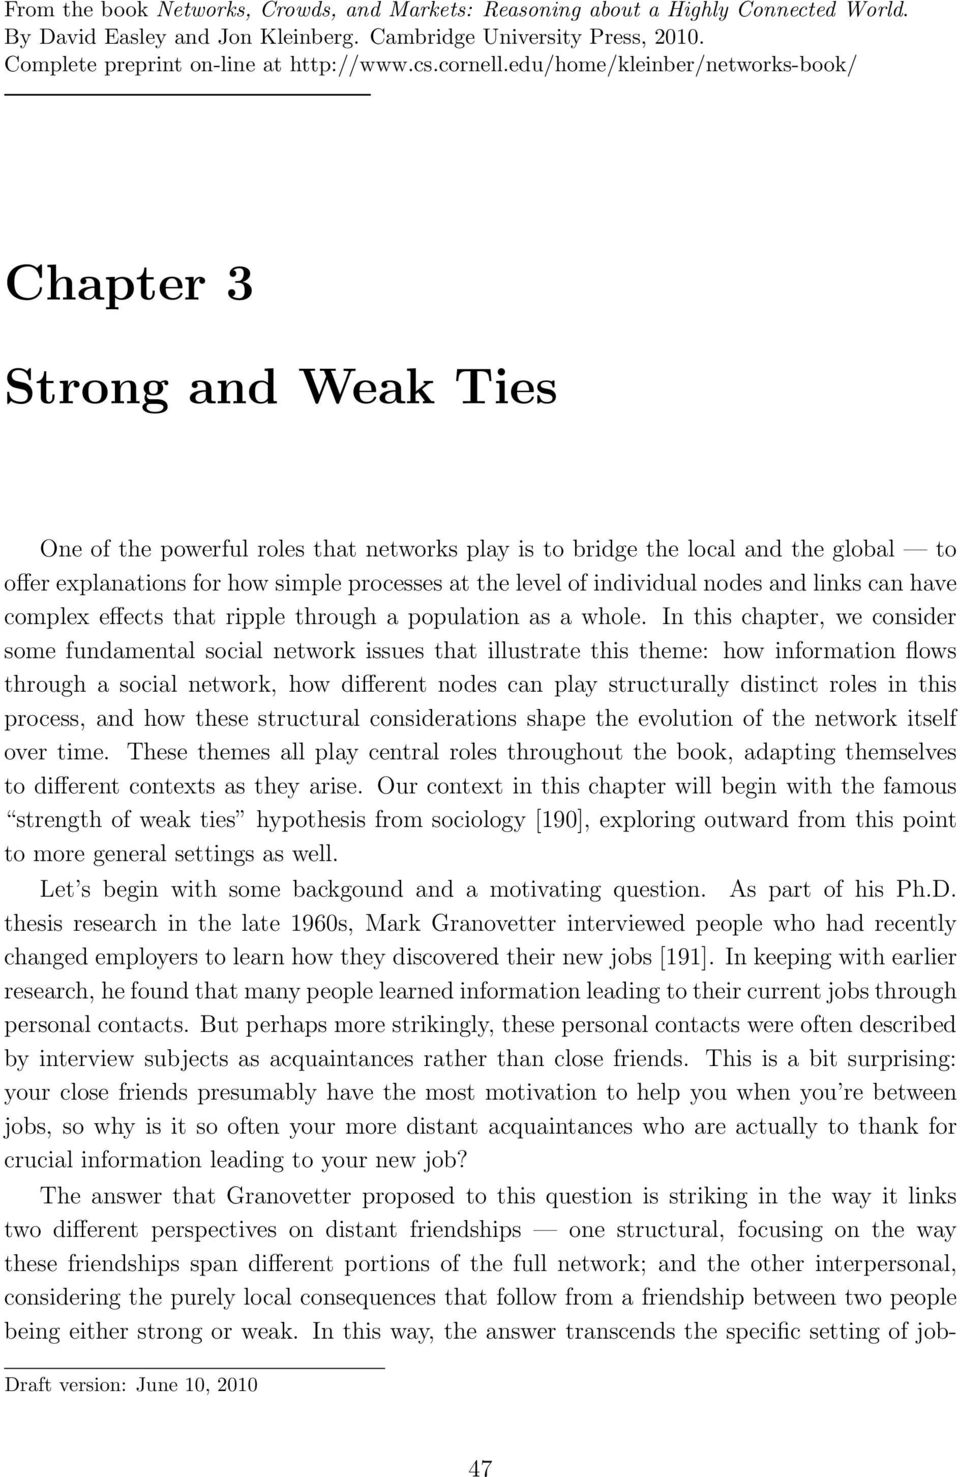 edu/home/kleinber/networks-book/ Chapter 3 trong and eak Ties One of the powerful roles that networks play is to bridge the local and the global to offer explanations for how simple processes at the